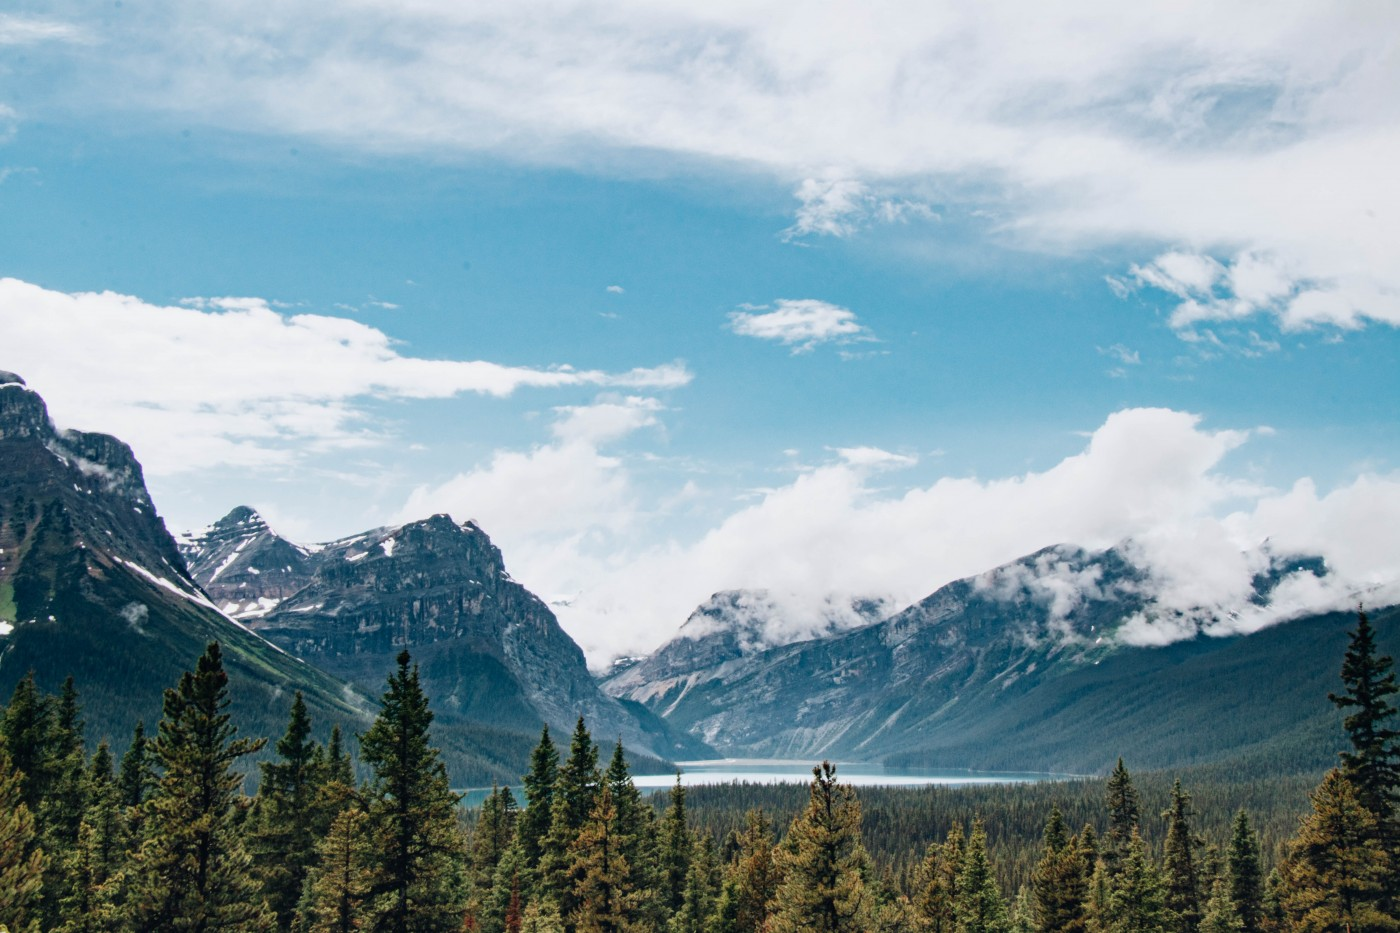 Icefields Parkway   Top 10 Photography Spots in Banff National Park